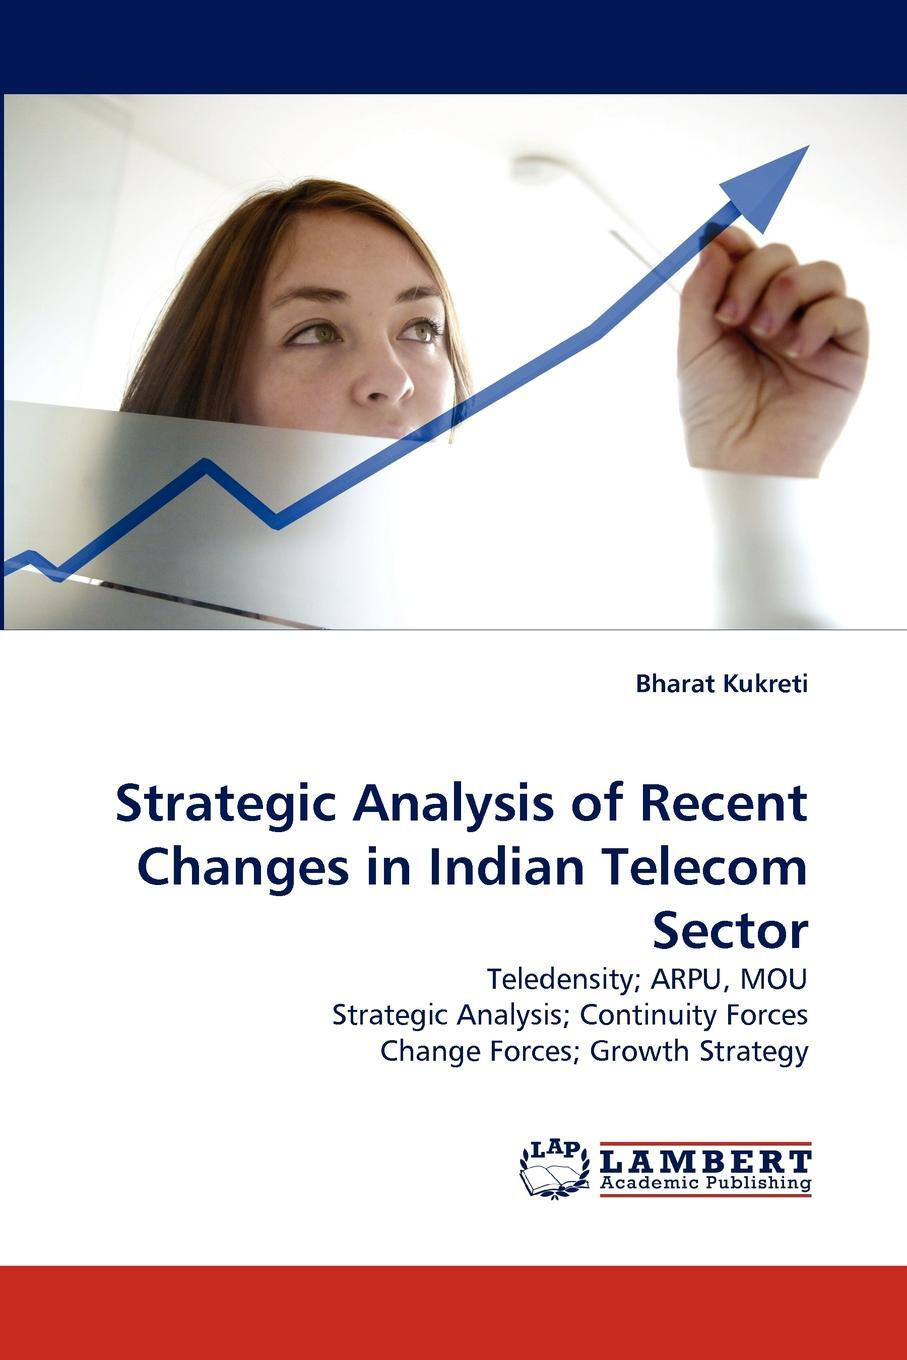 Strategic Analysis of Recent Changes in Indian Telecom Sector